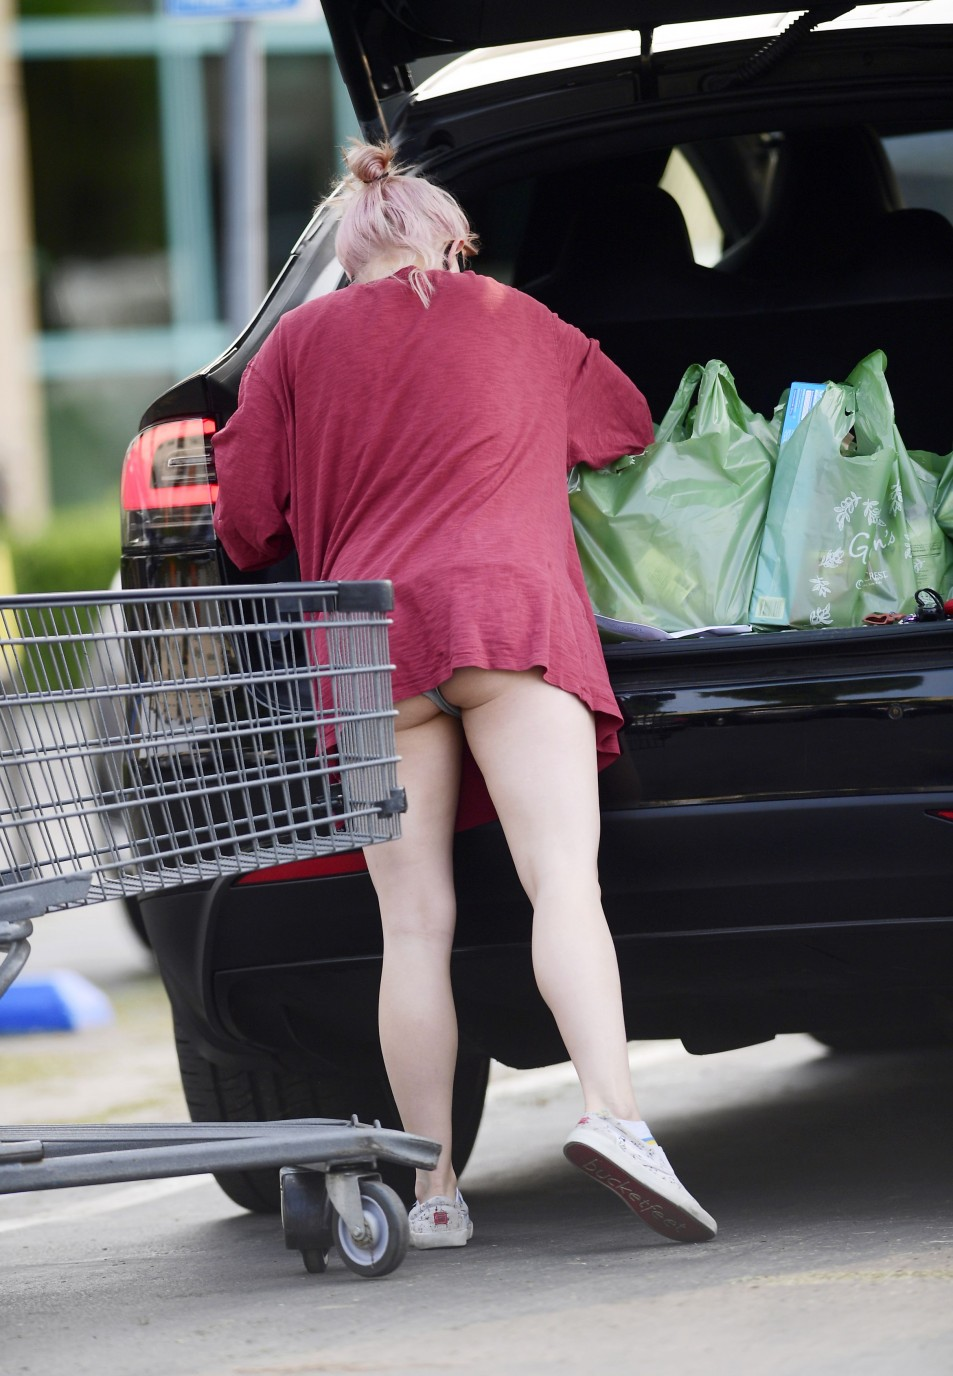 Ariel-Winter-Upskirt-while-grocery-shopping-in-Los-Angeles-992020-3.jpg